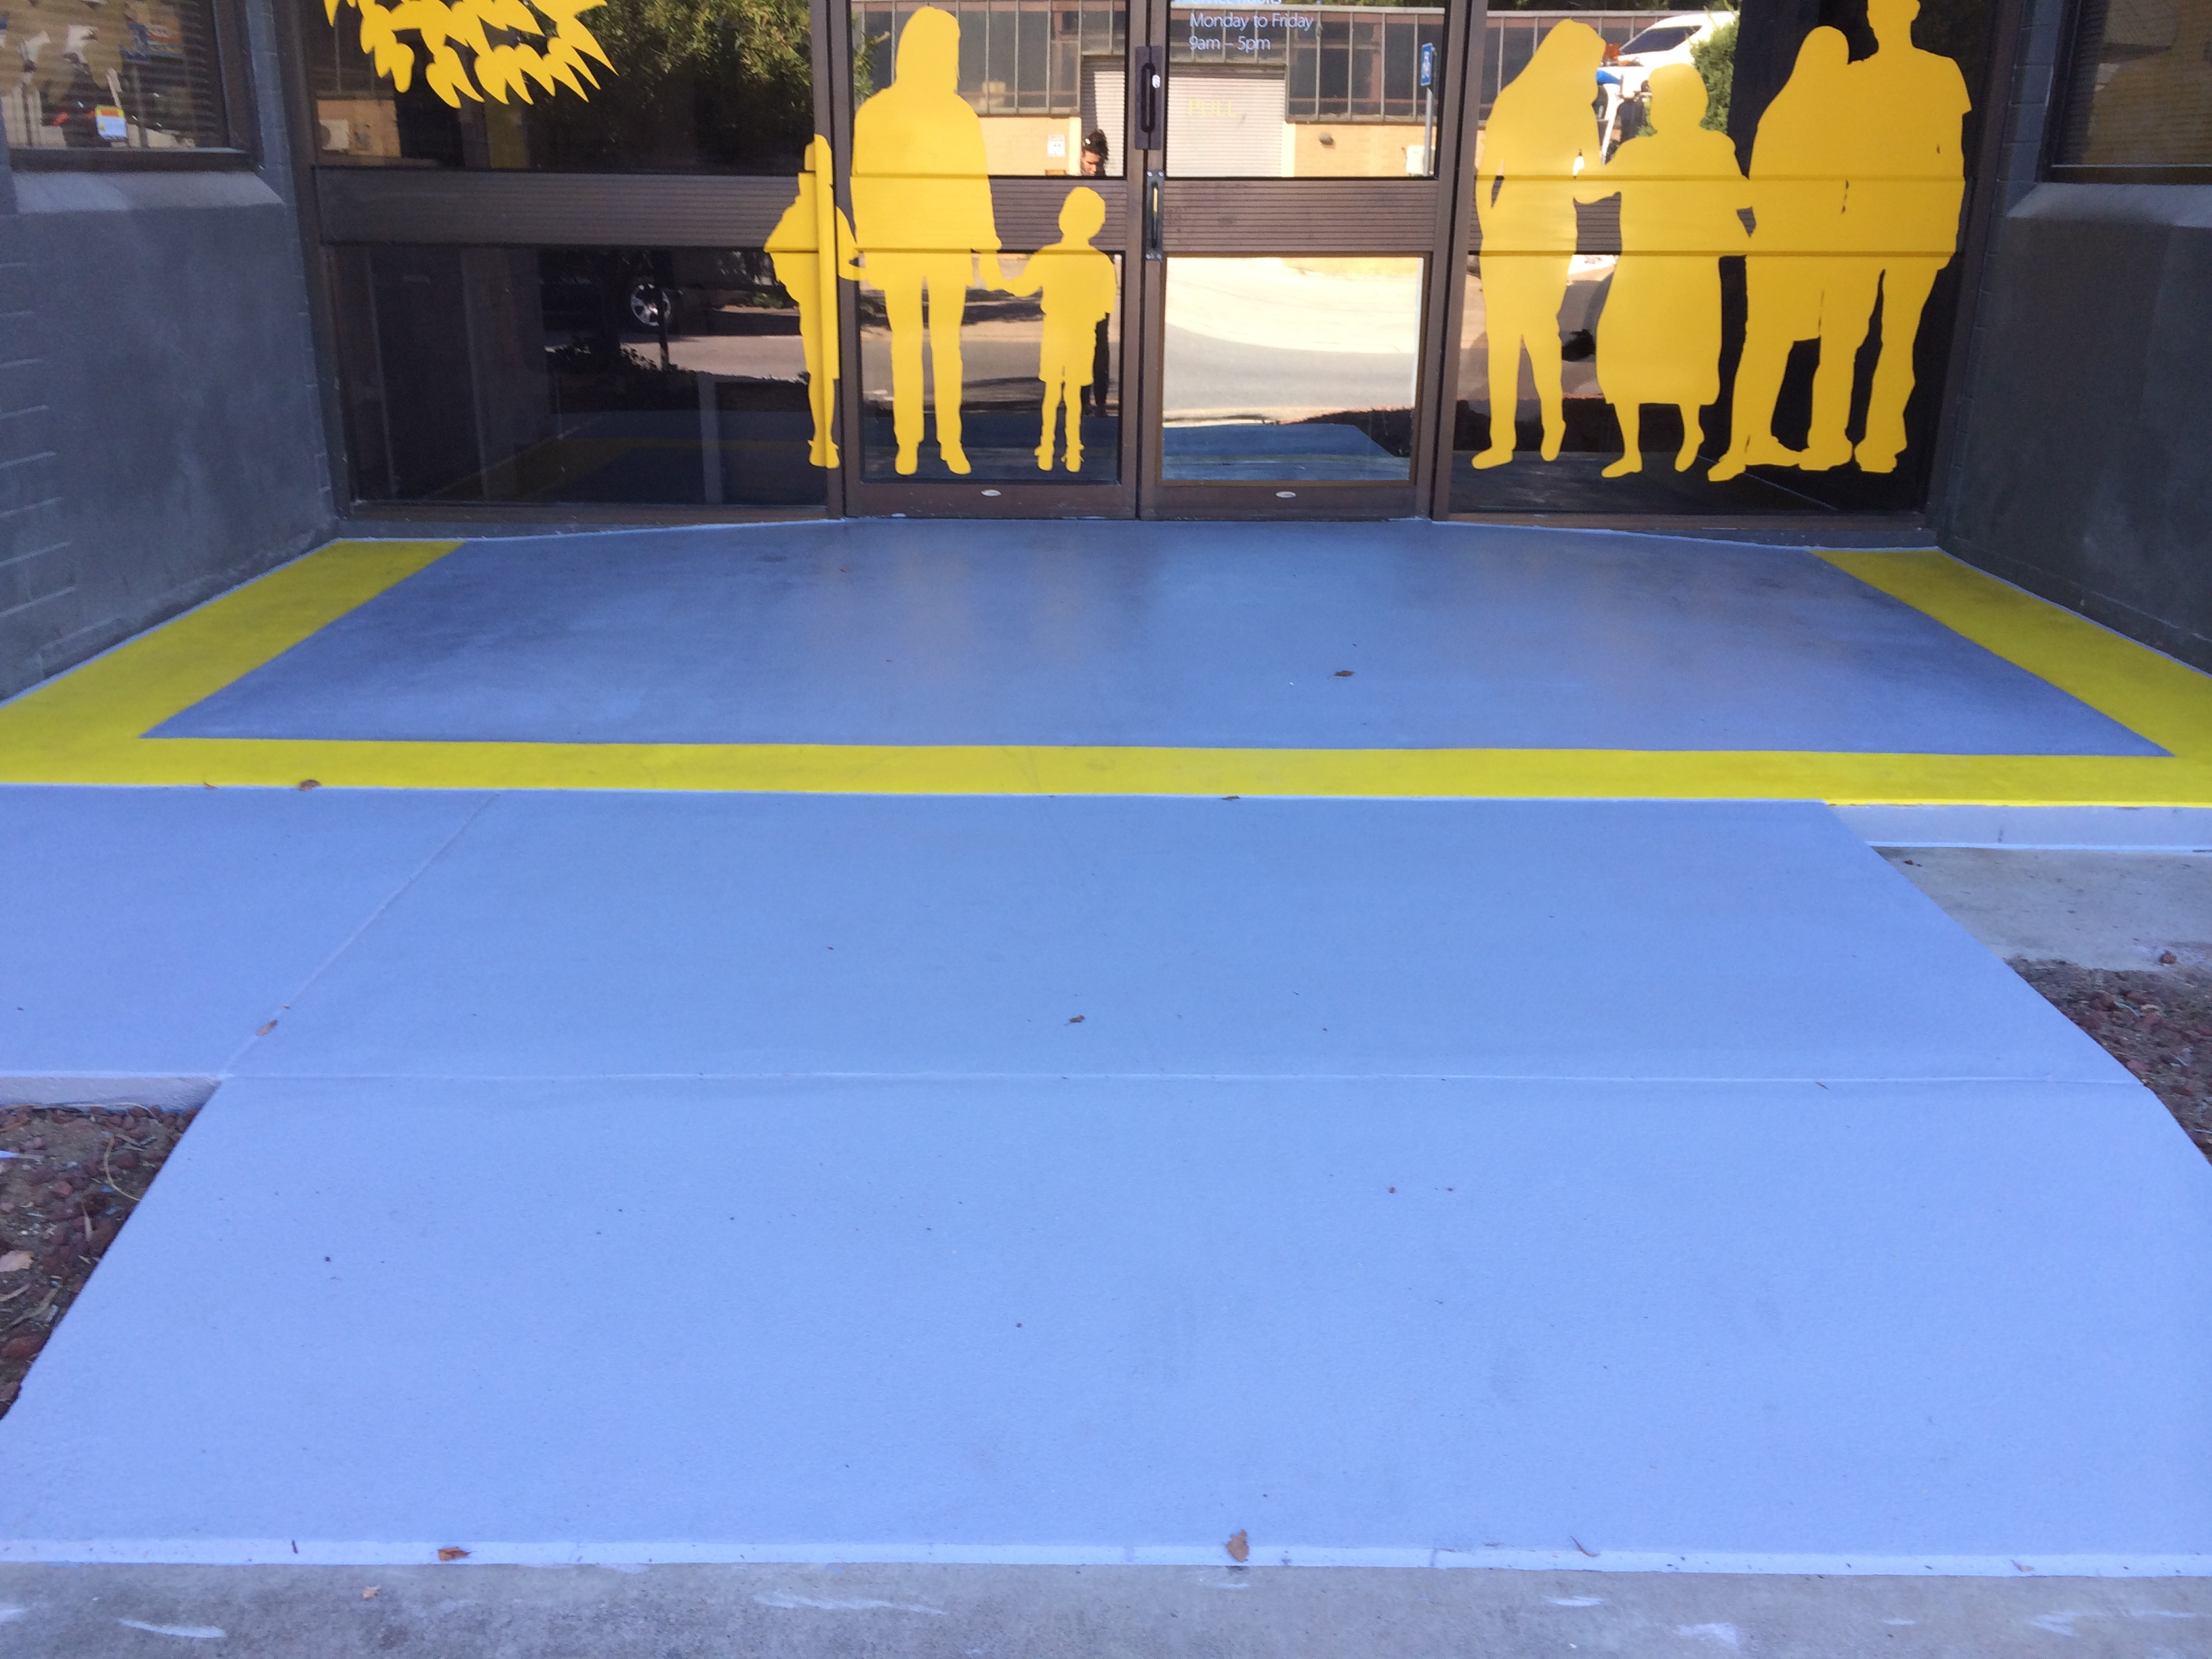 Public Entrance with Slip-Resistant Coating